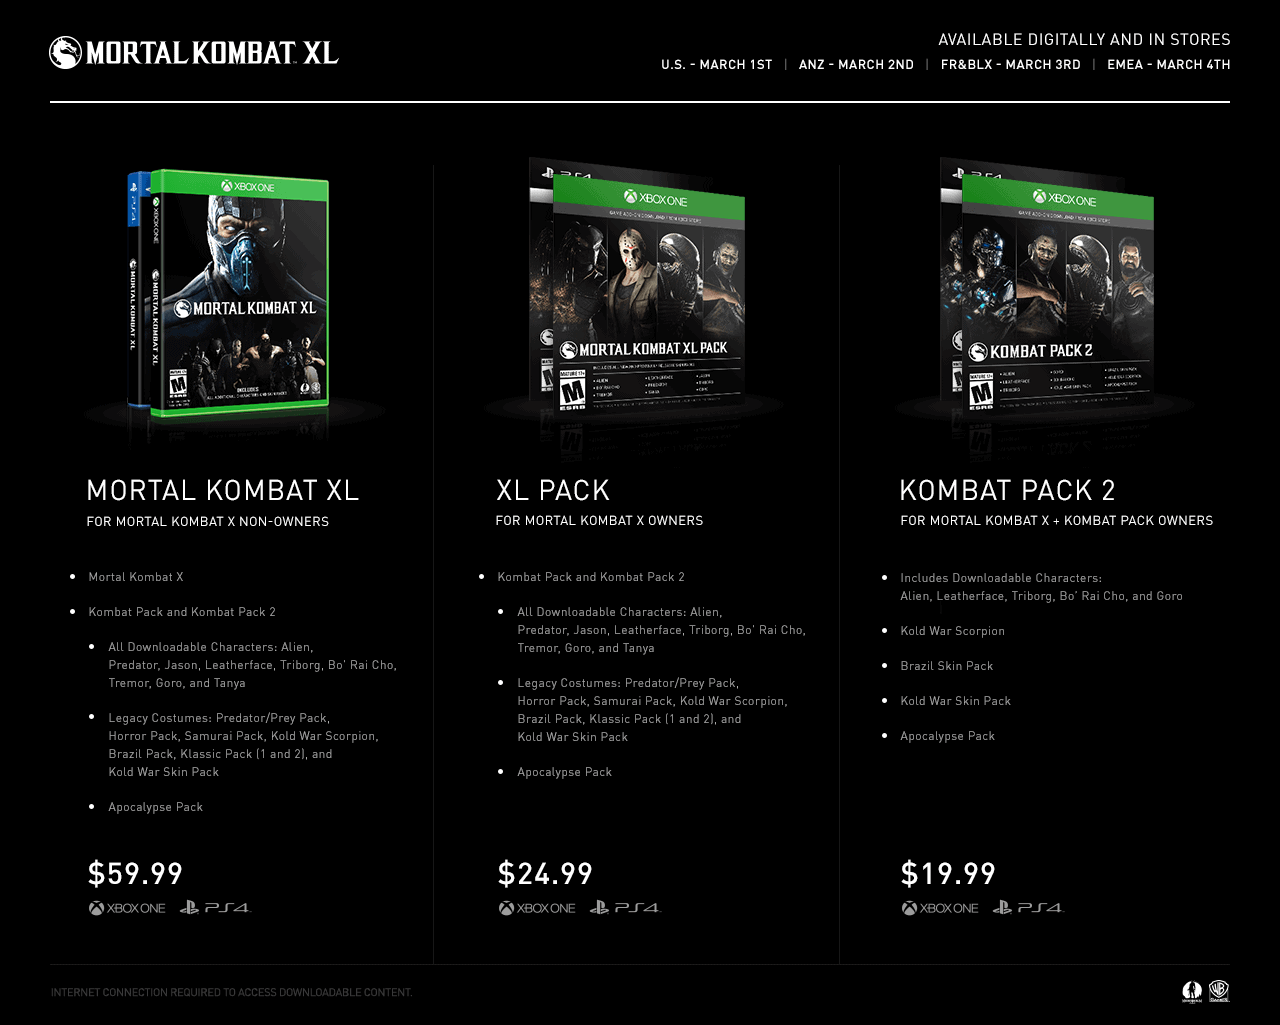 Mortal Kombat XL Pricing Details